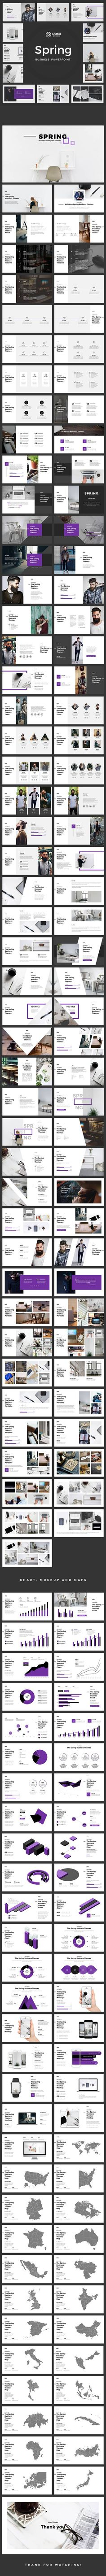 Itrack - StartUp Pitch Deck Google Slides Templates | Template ...